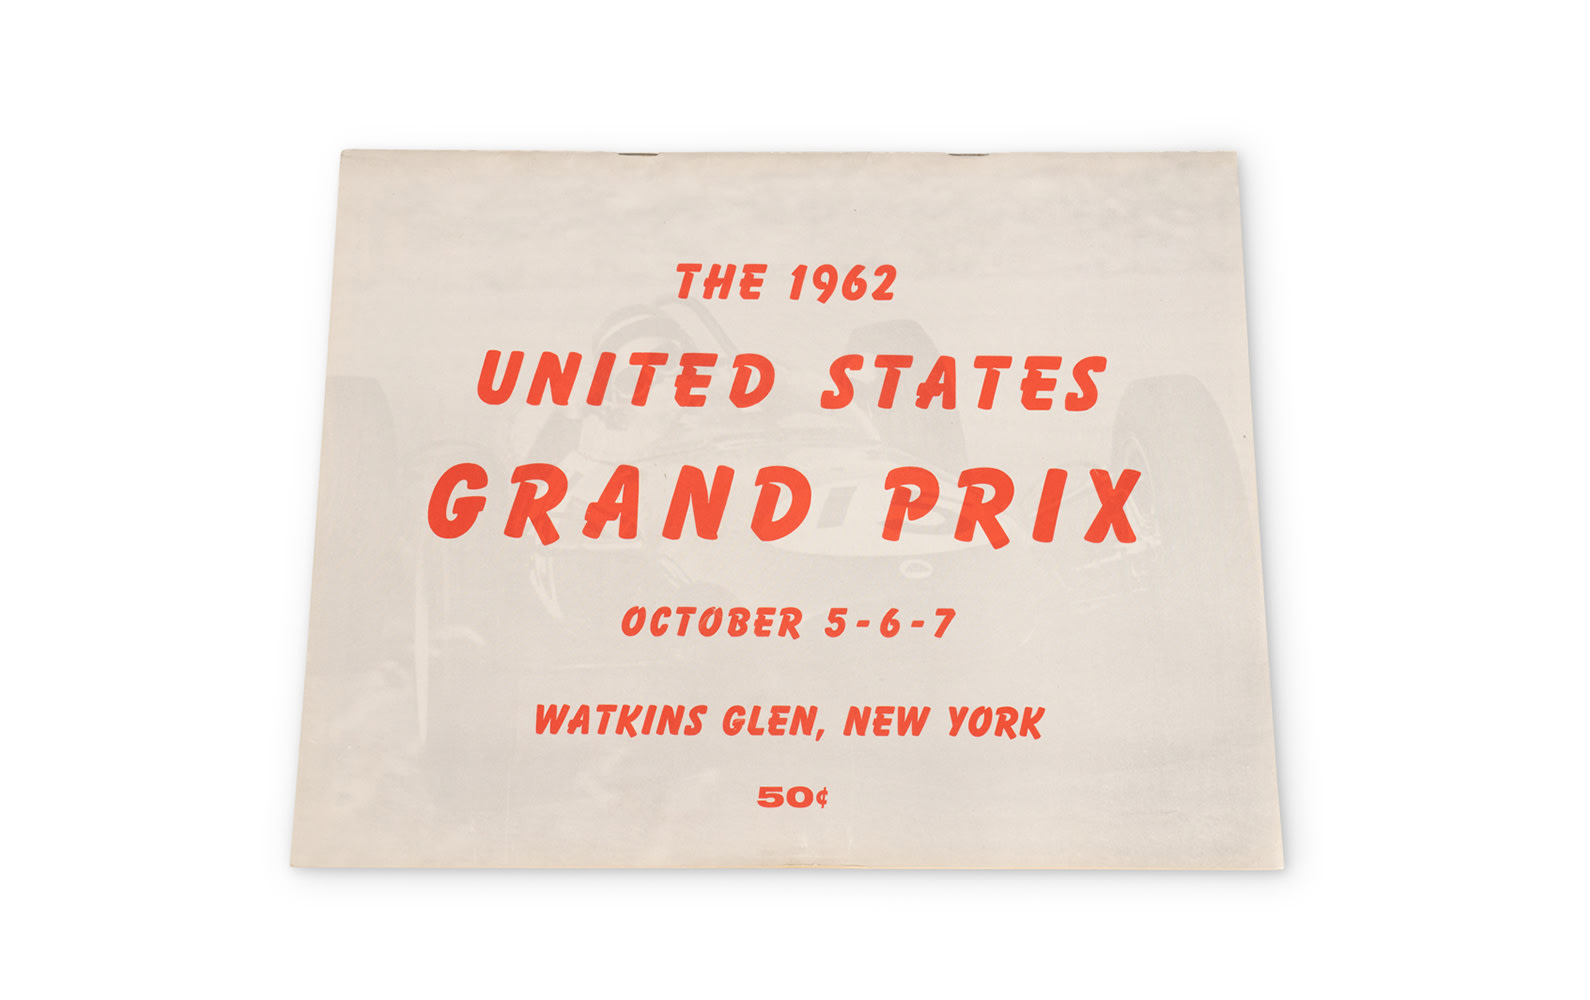 1962 United States Grand Prix Official Race Program